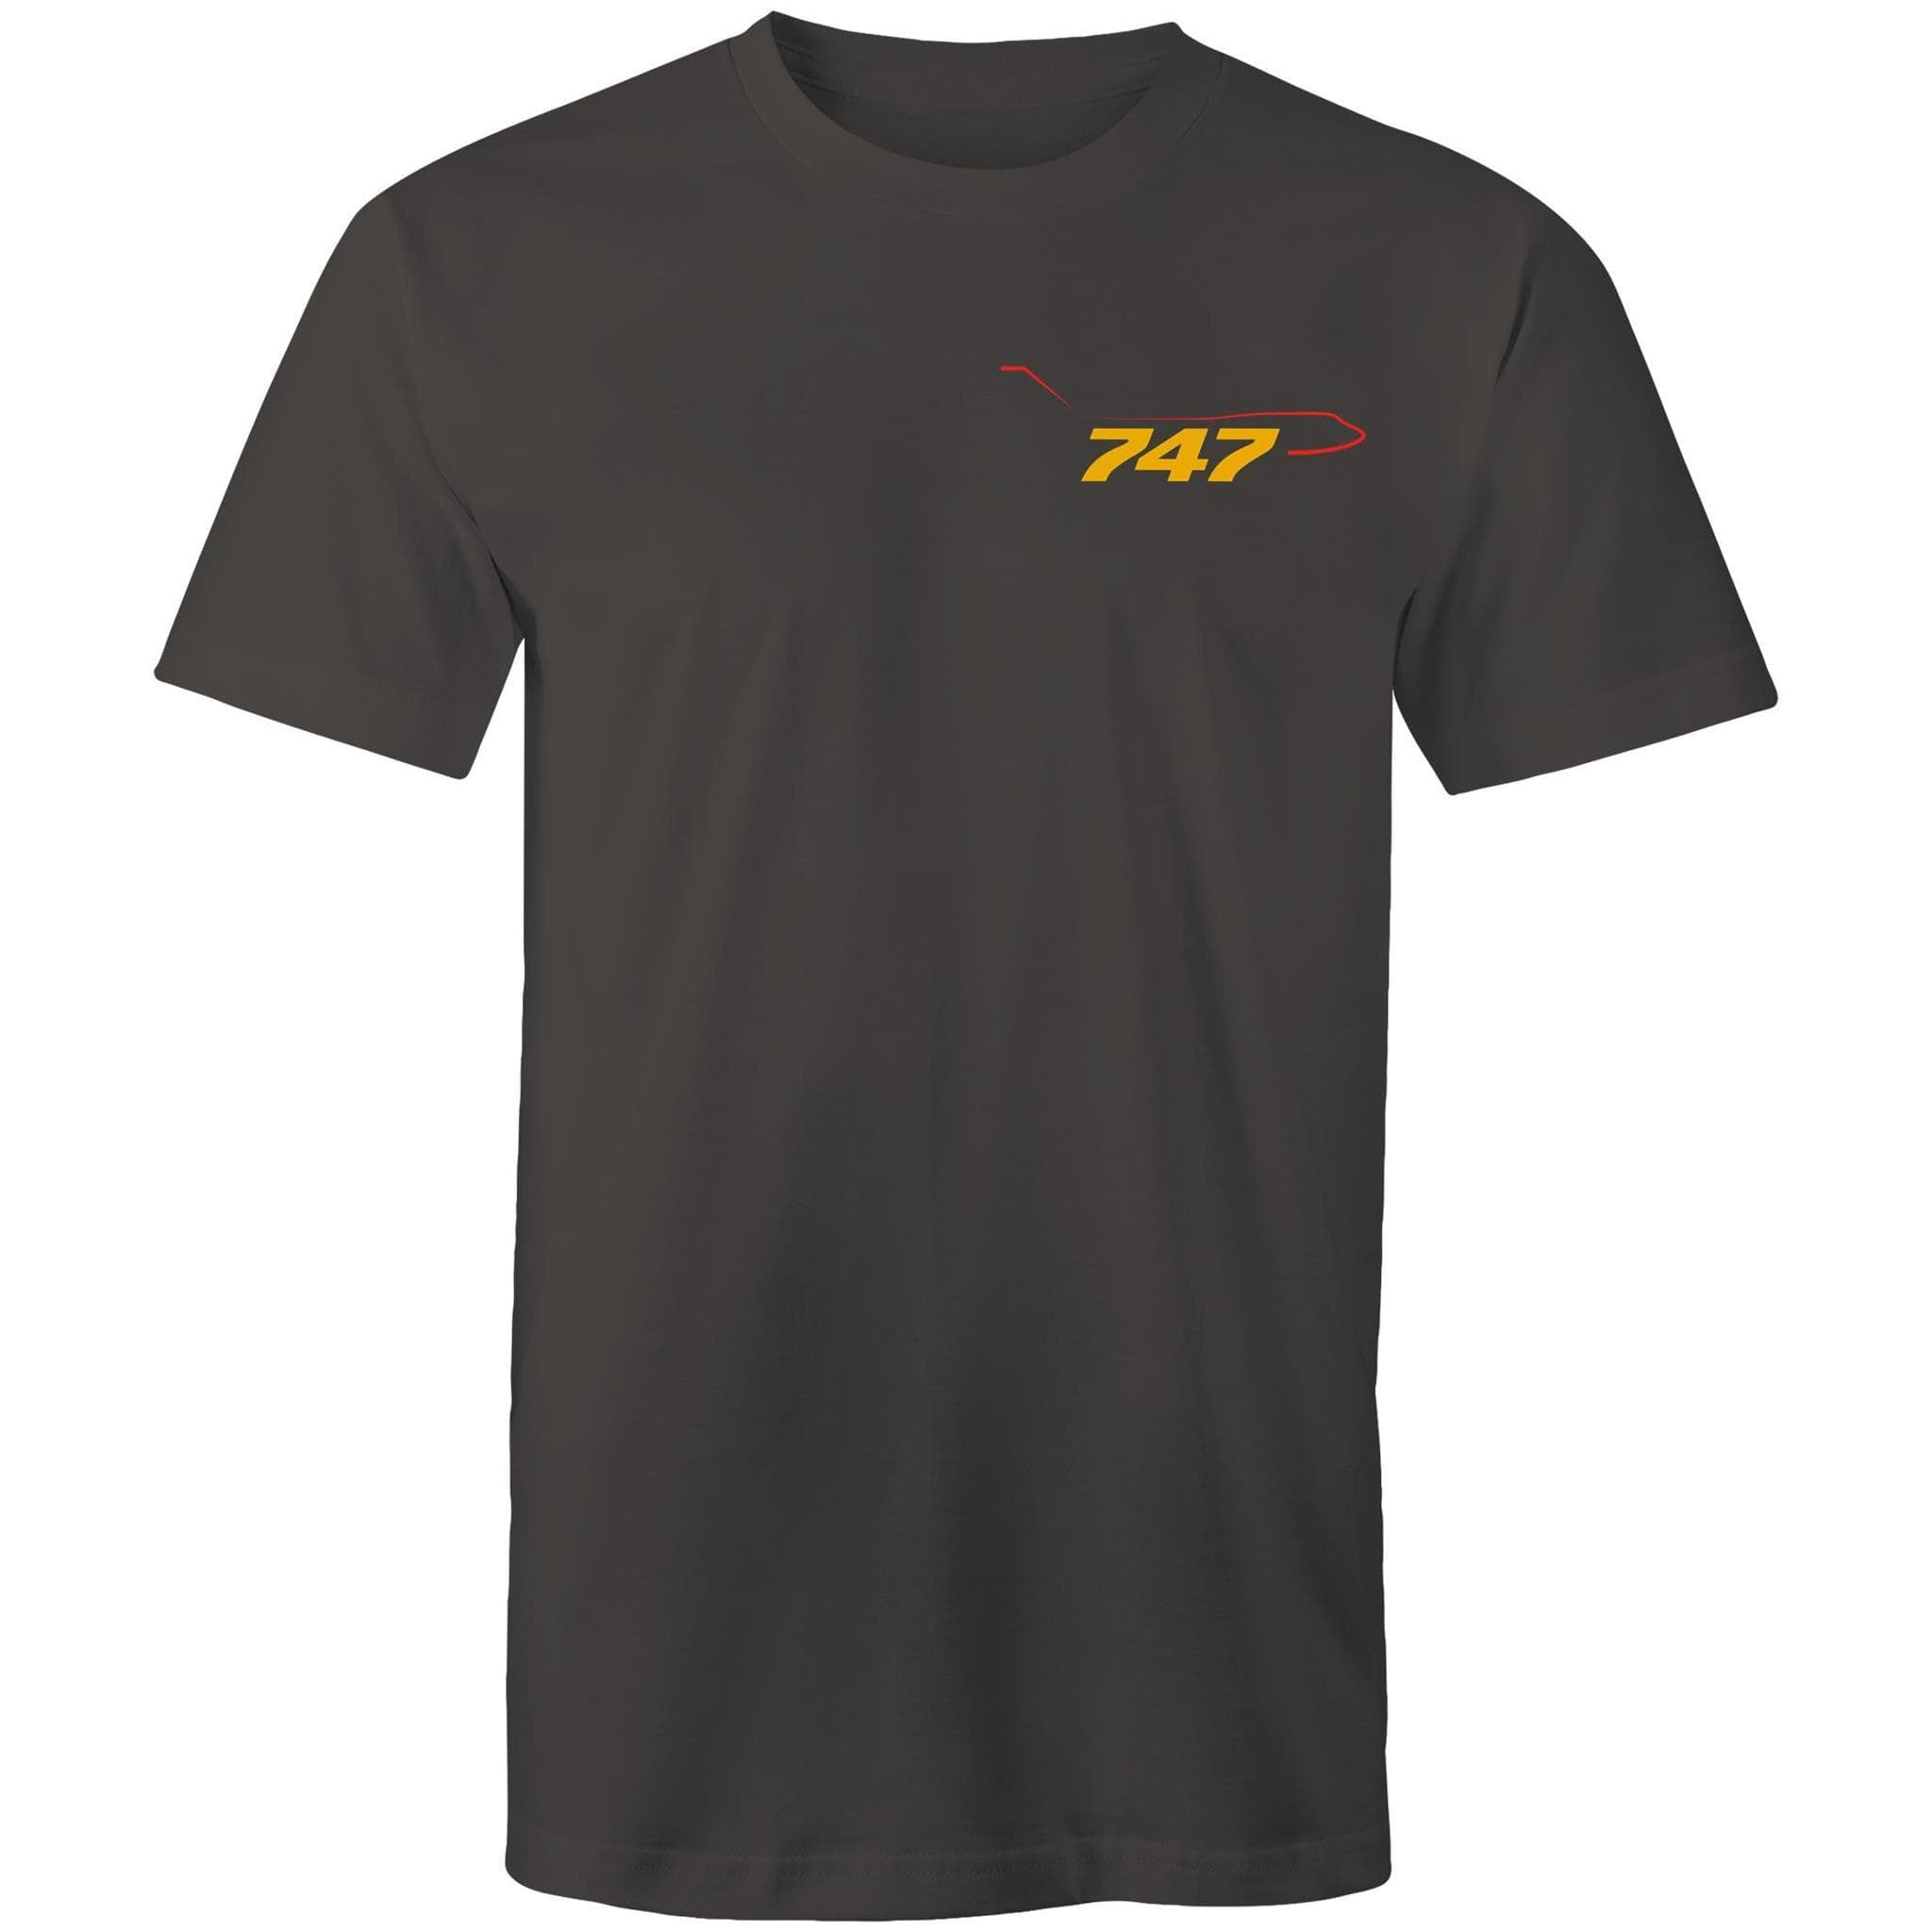 The 747 Pocket - Men's Crew-Neck Tee - Just Print Co